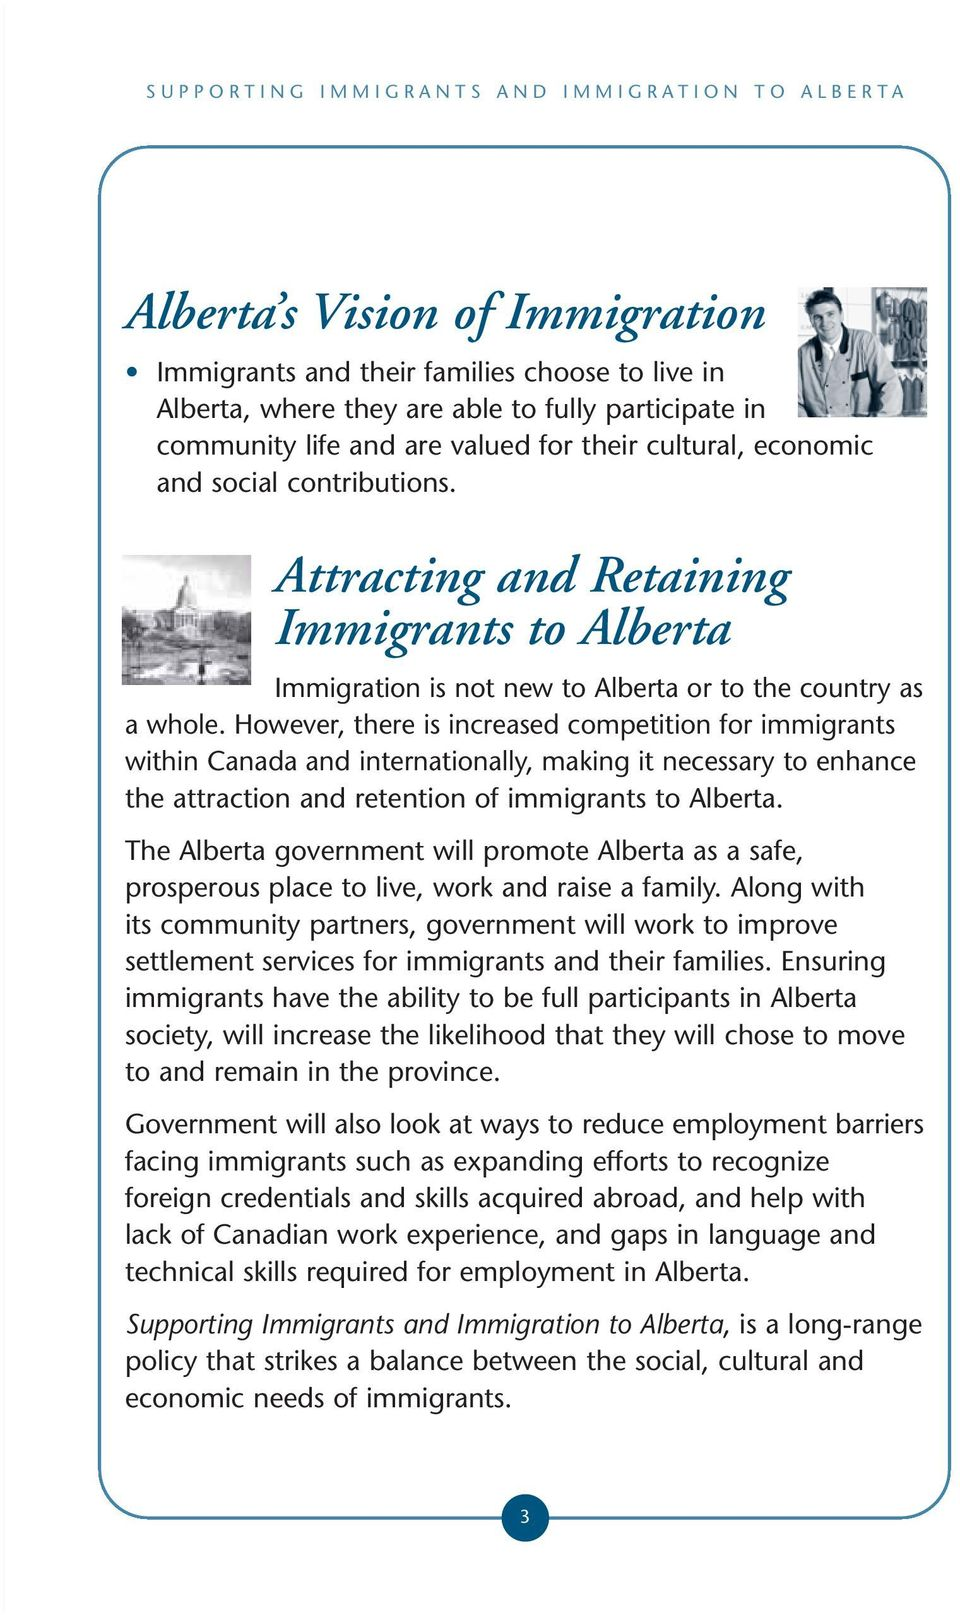 However, there is increased competition for immigrants within Canada and internationally, making it necessary to enhance the attraction and retention of immigrants to Alberta.